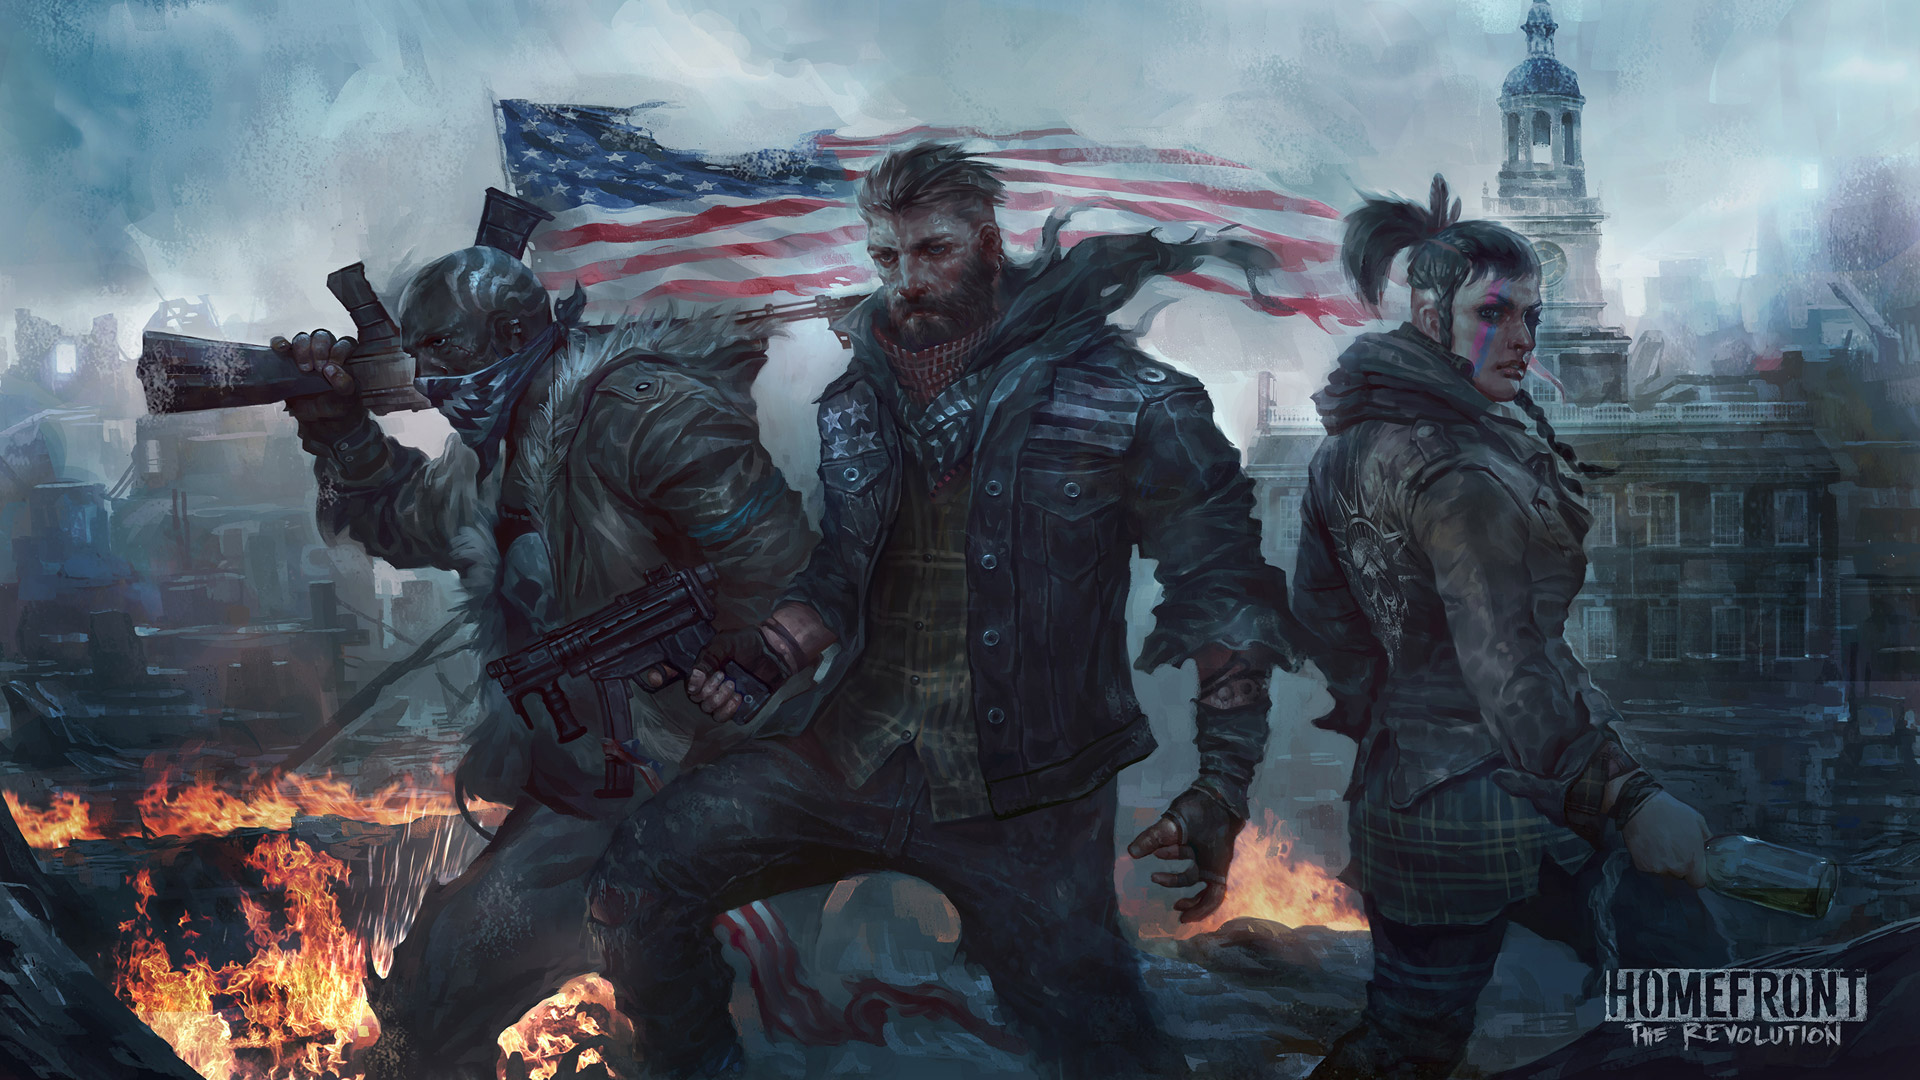 Free Homefront: The Revolution Wallpaper in 1920x1080